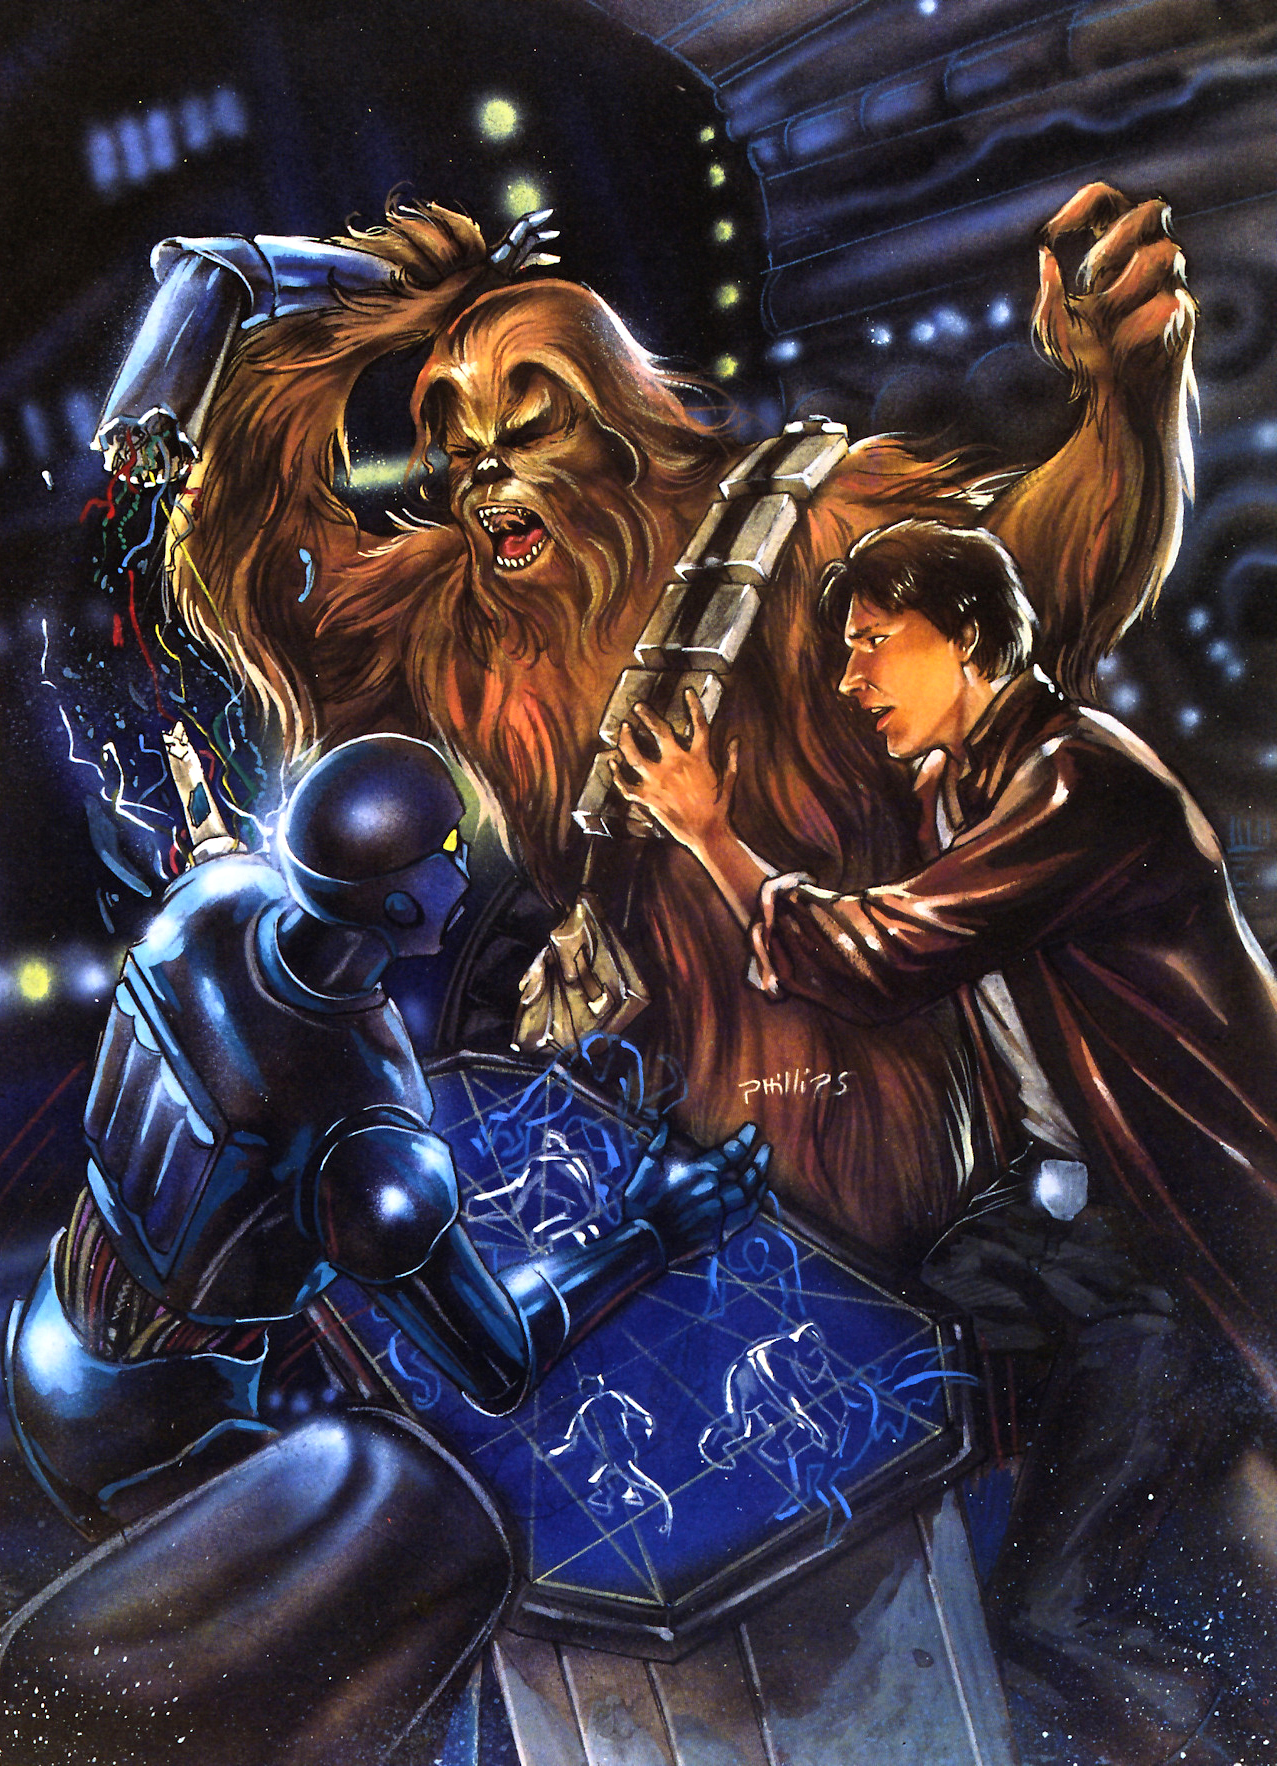 Think, that Adult art wookiee